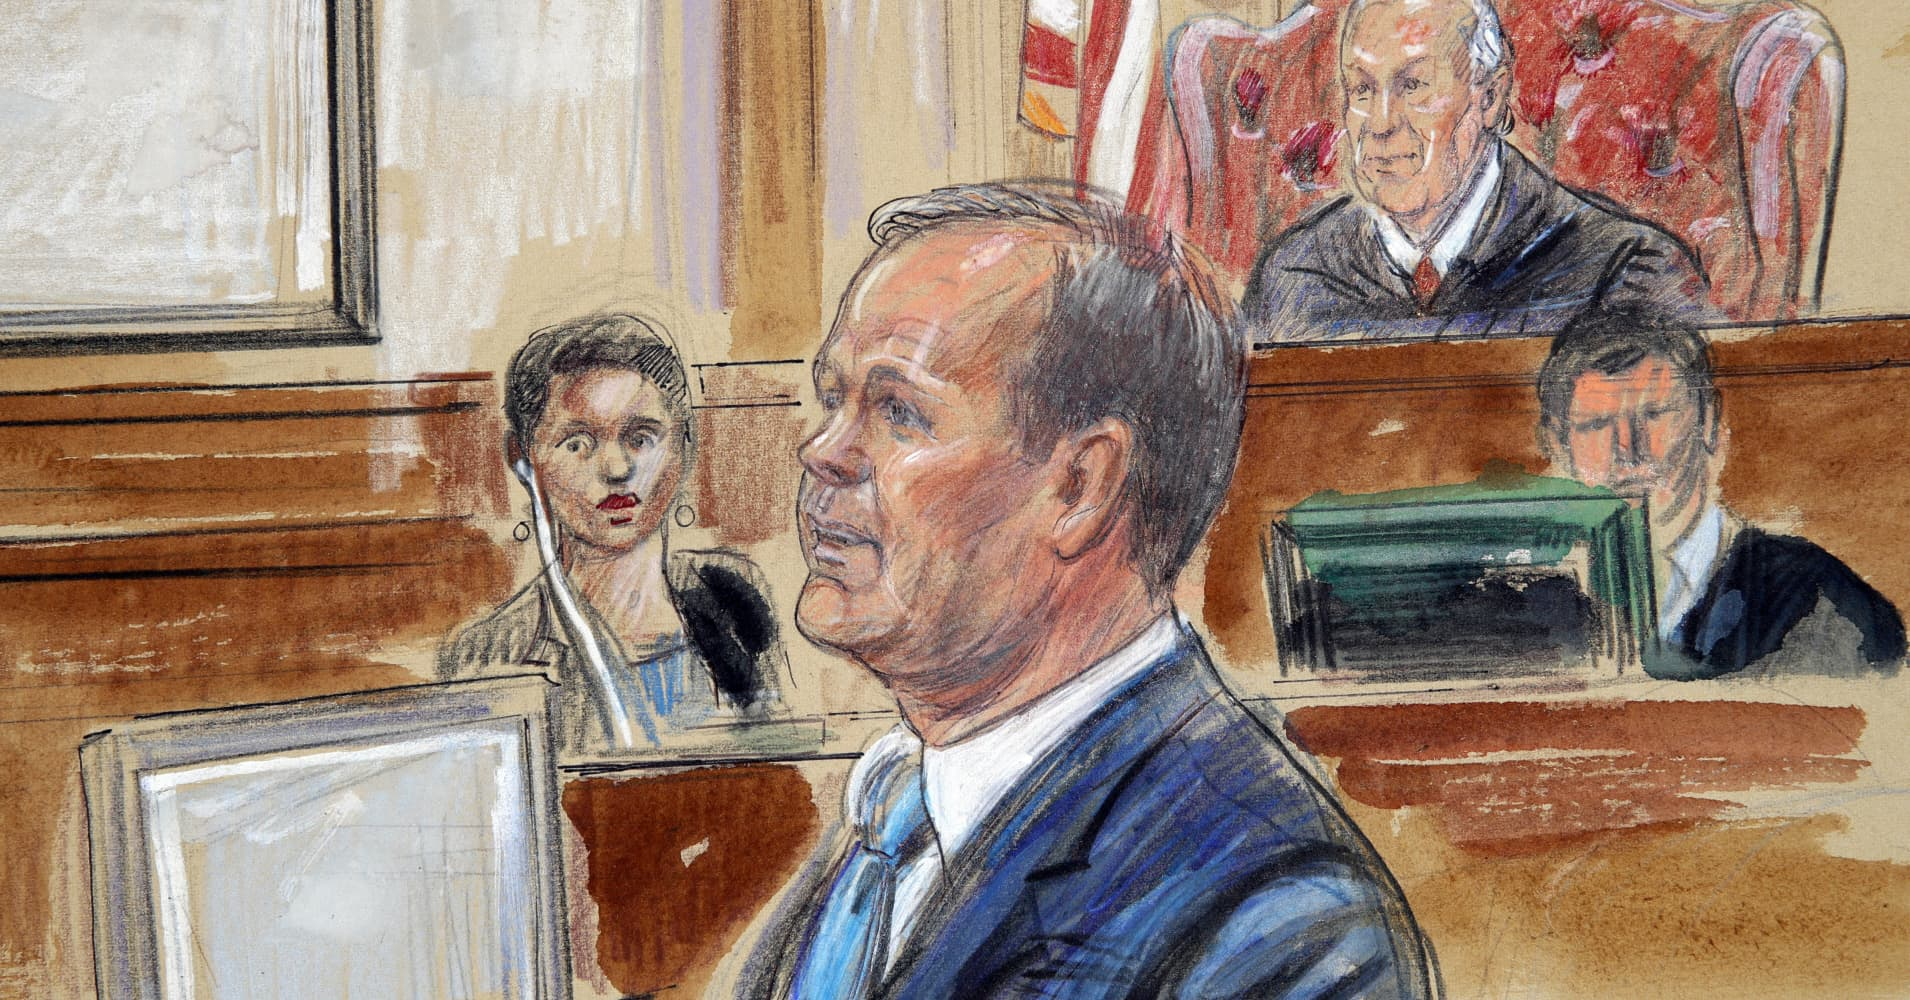 Judge in Paul Manafort trial said he's been threatened